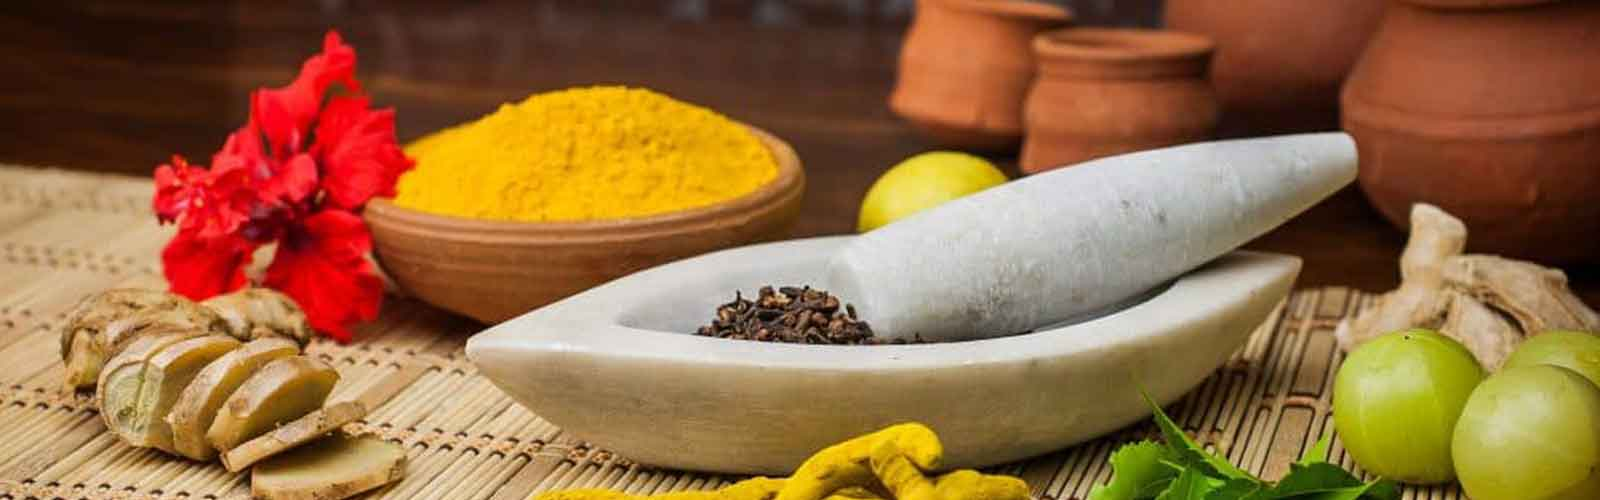 Ayurveda Cooking Certification Course in Rishikesh, India